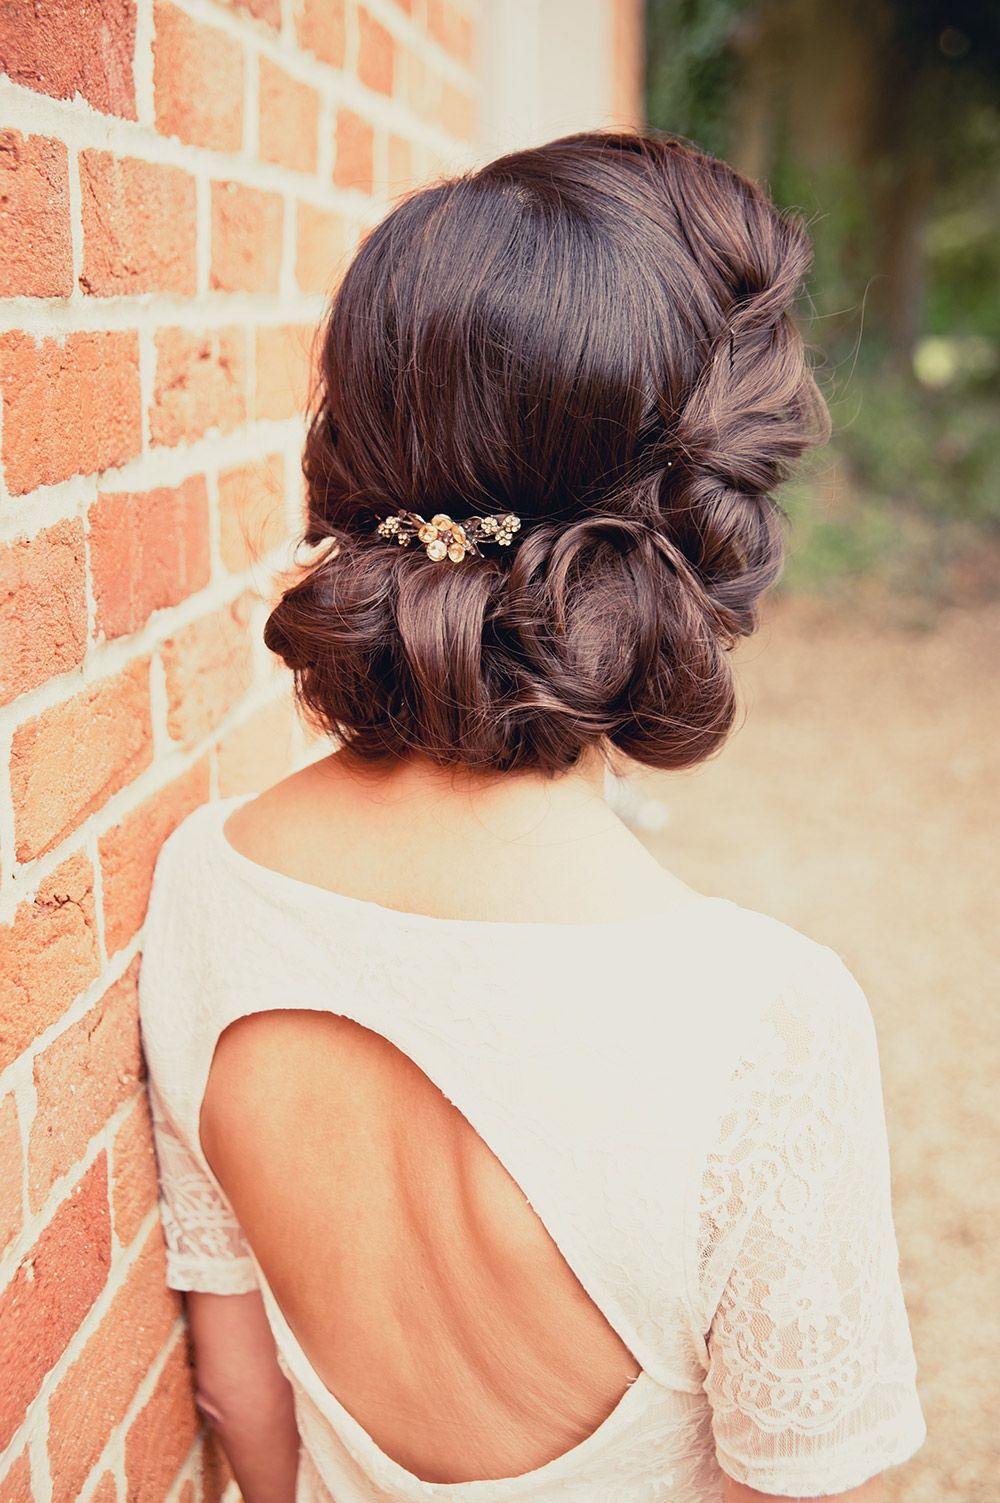 beautiful wedding updos: 17 inspirational styles for your big day